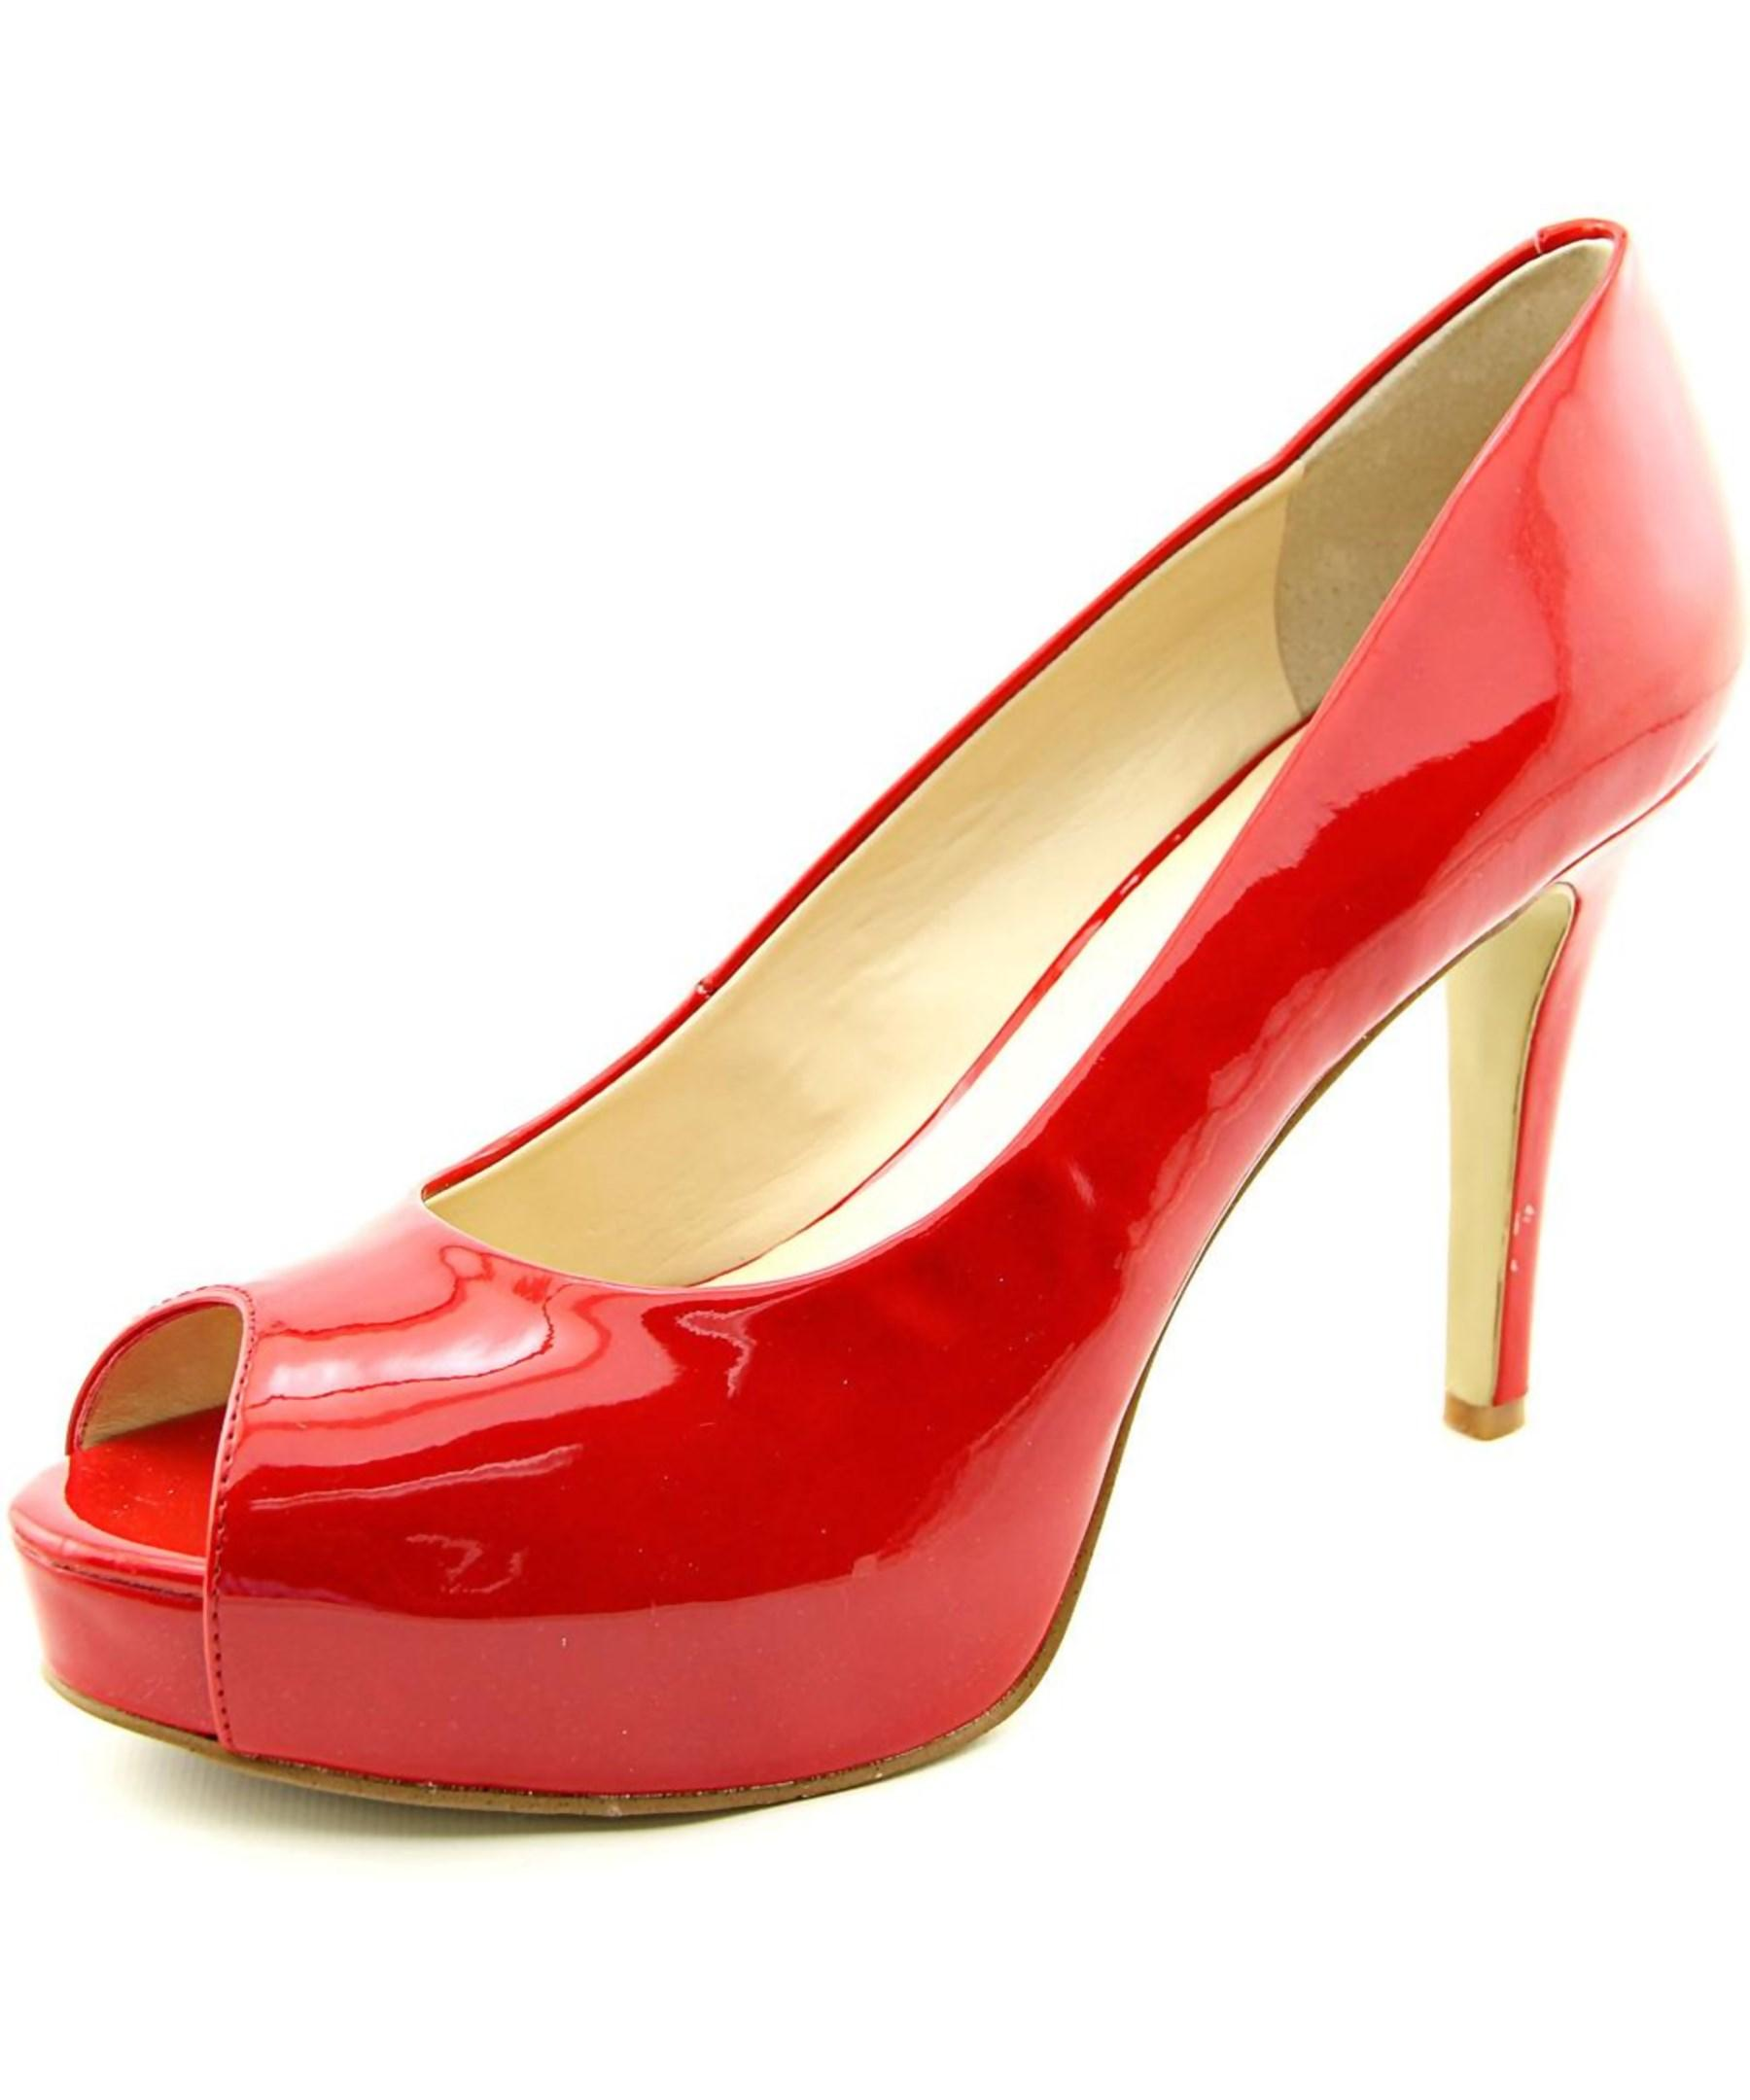 ed9bc5593 Lyst - Nine West Camya Open Toe Synthetic Platform Heel in Red